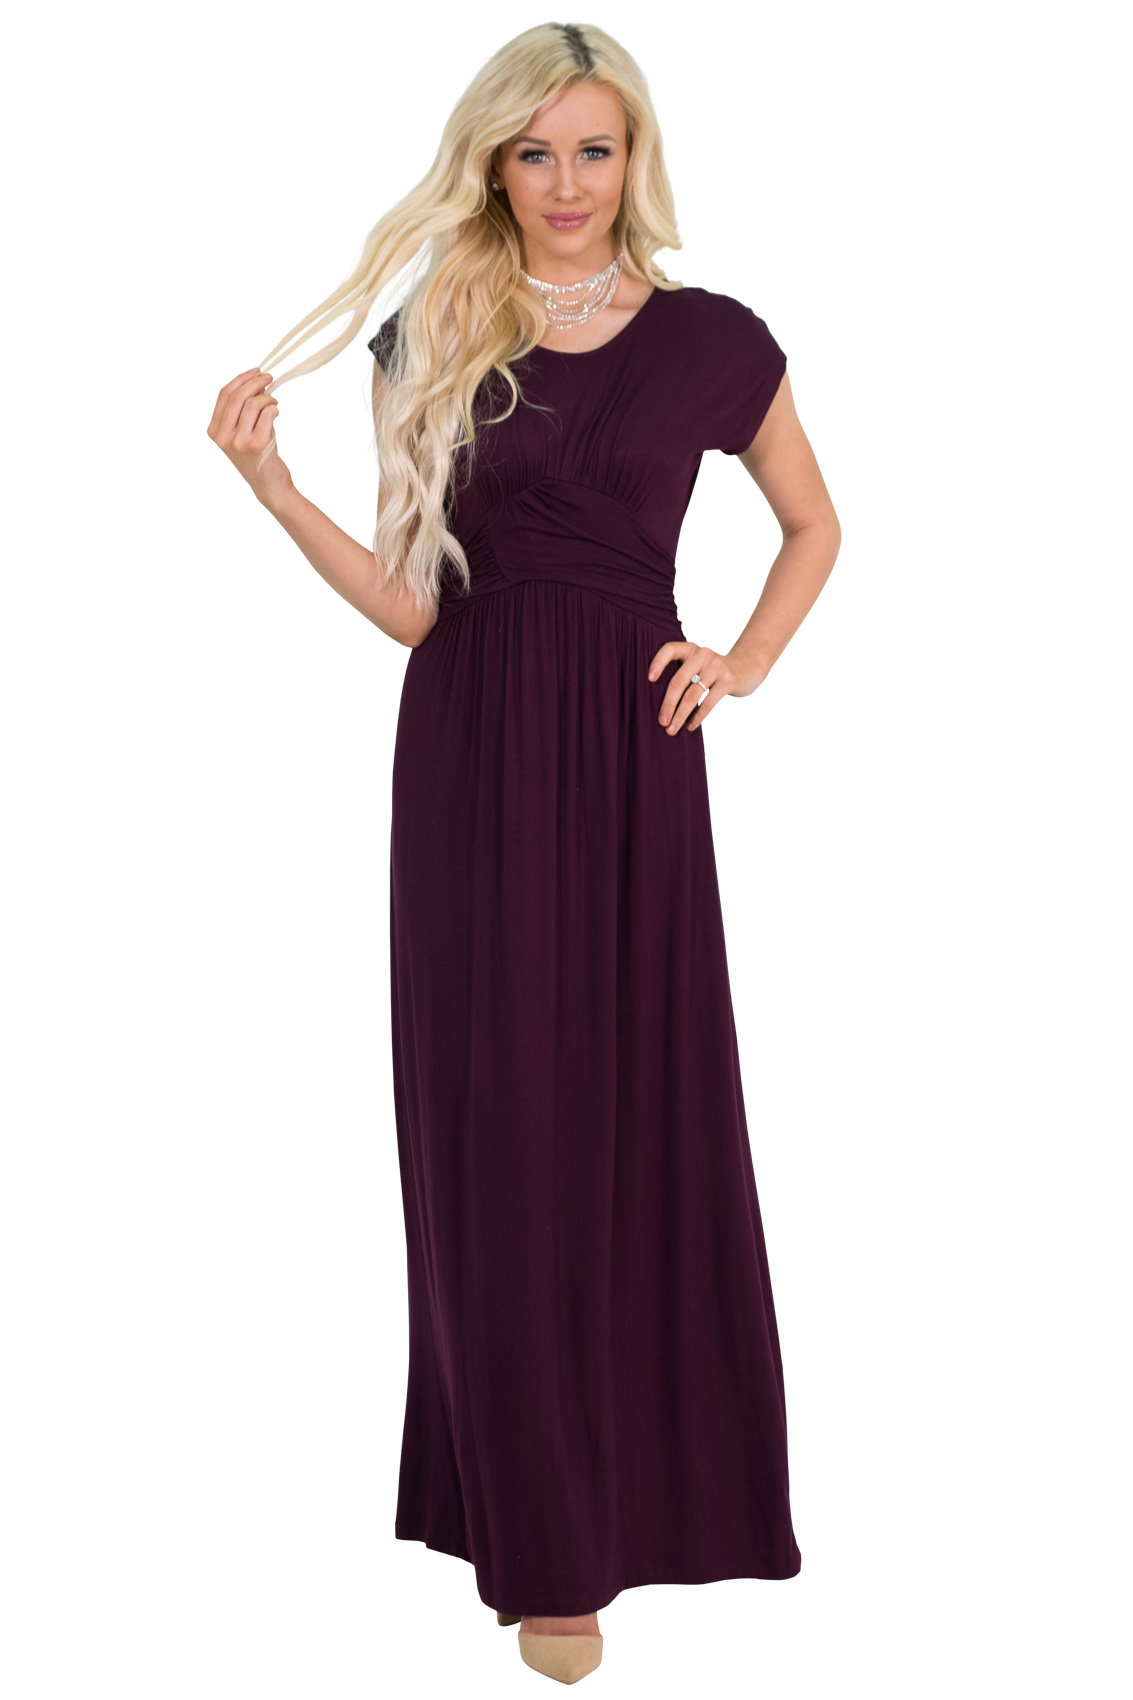 af4d0fbf906 ... Athena Modest Maxi Bridesmaid Dress in Deep Plum Purple (aka Burgundy  Plum)  RESTOCKED